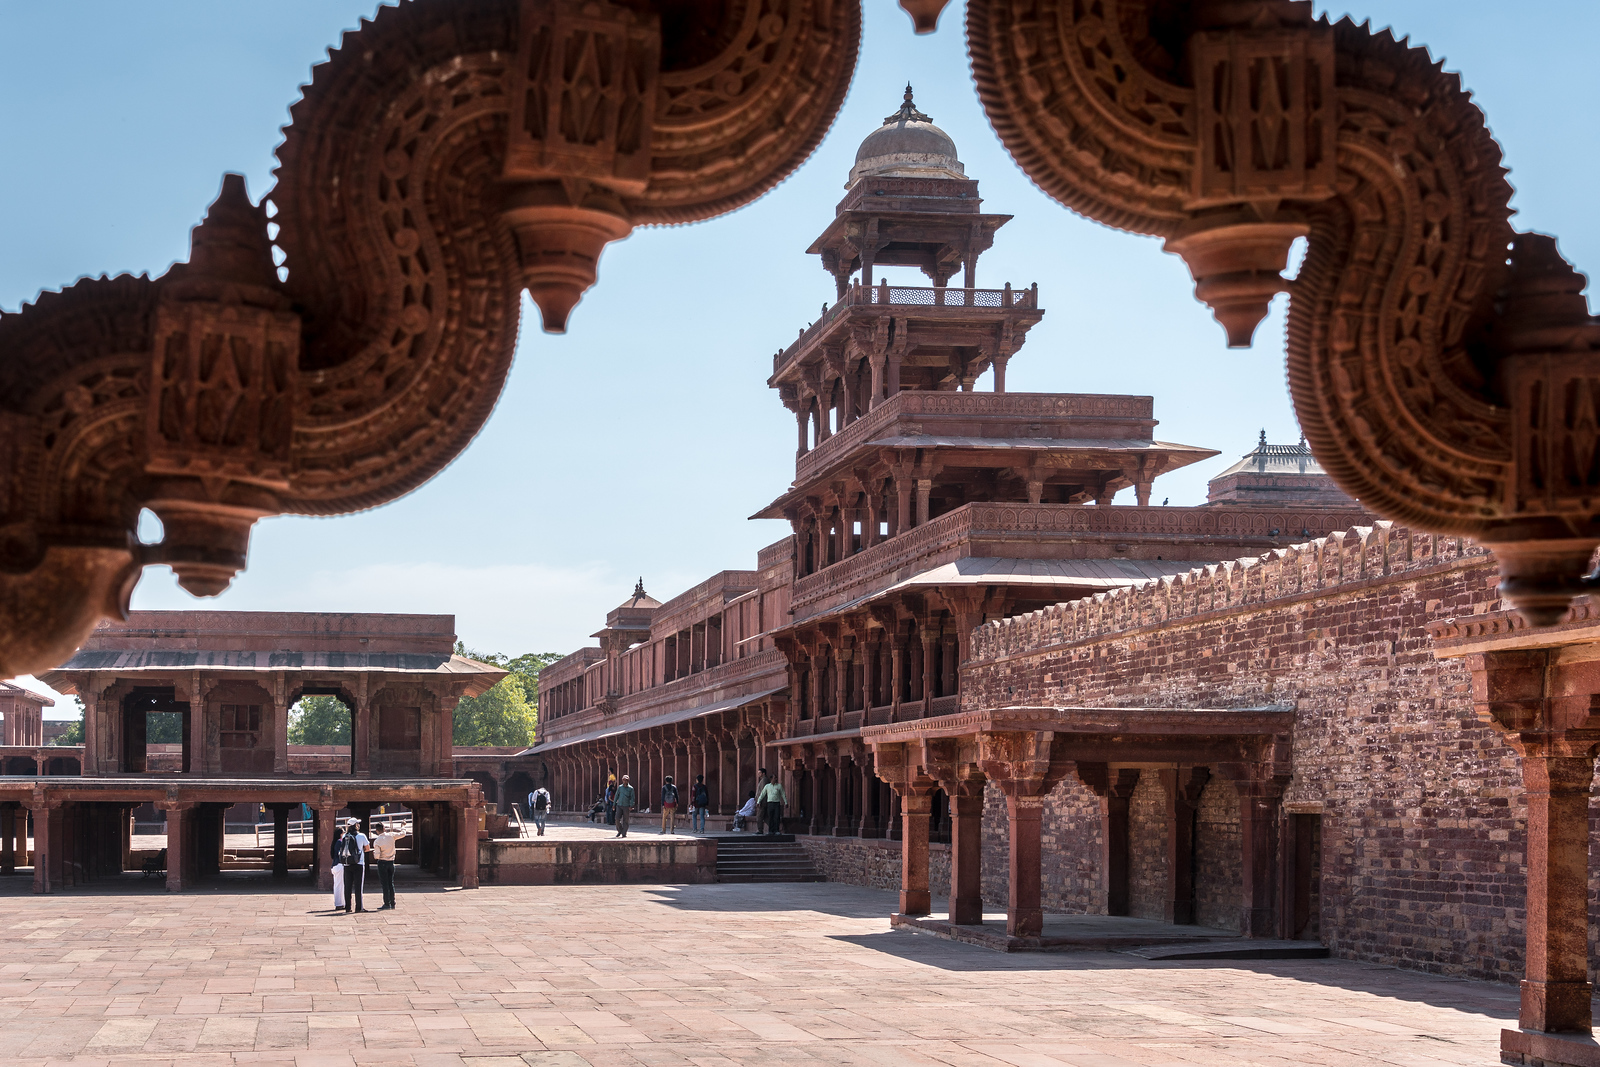 Fatehpur Sikri UNESCO World Heritage Site